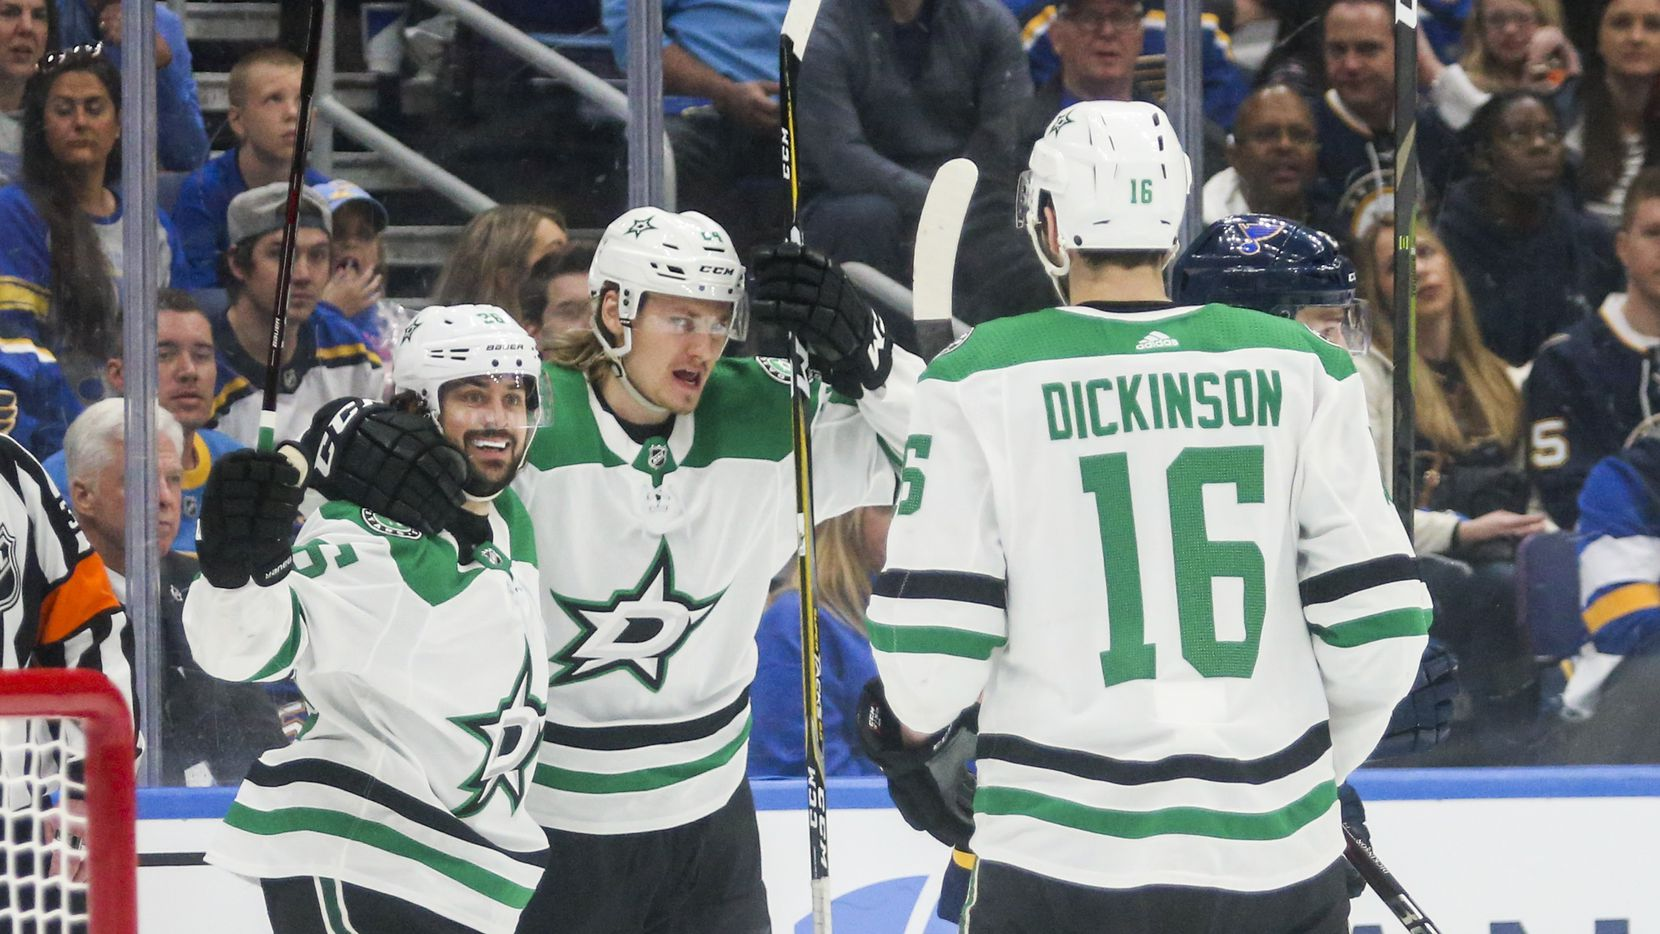 Dallas Stars center Mats Zuccarello (36), left wing Roope Hintz (24) and center Jason Dickinson (16) celebrate after scoring on St. Louis Blues goaltender Jordan Binnington (50) during game 2 of an NHL second round playoff series at Enterprise Center in St. Louis, Missouri on Saturday, April 27, 2019.(Shaban Athuman/Staff Photographer)